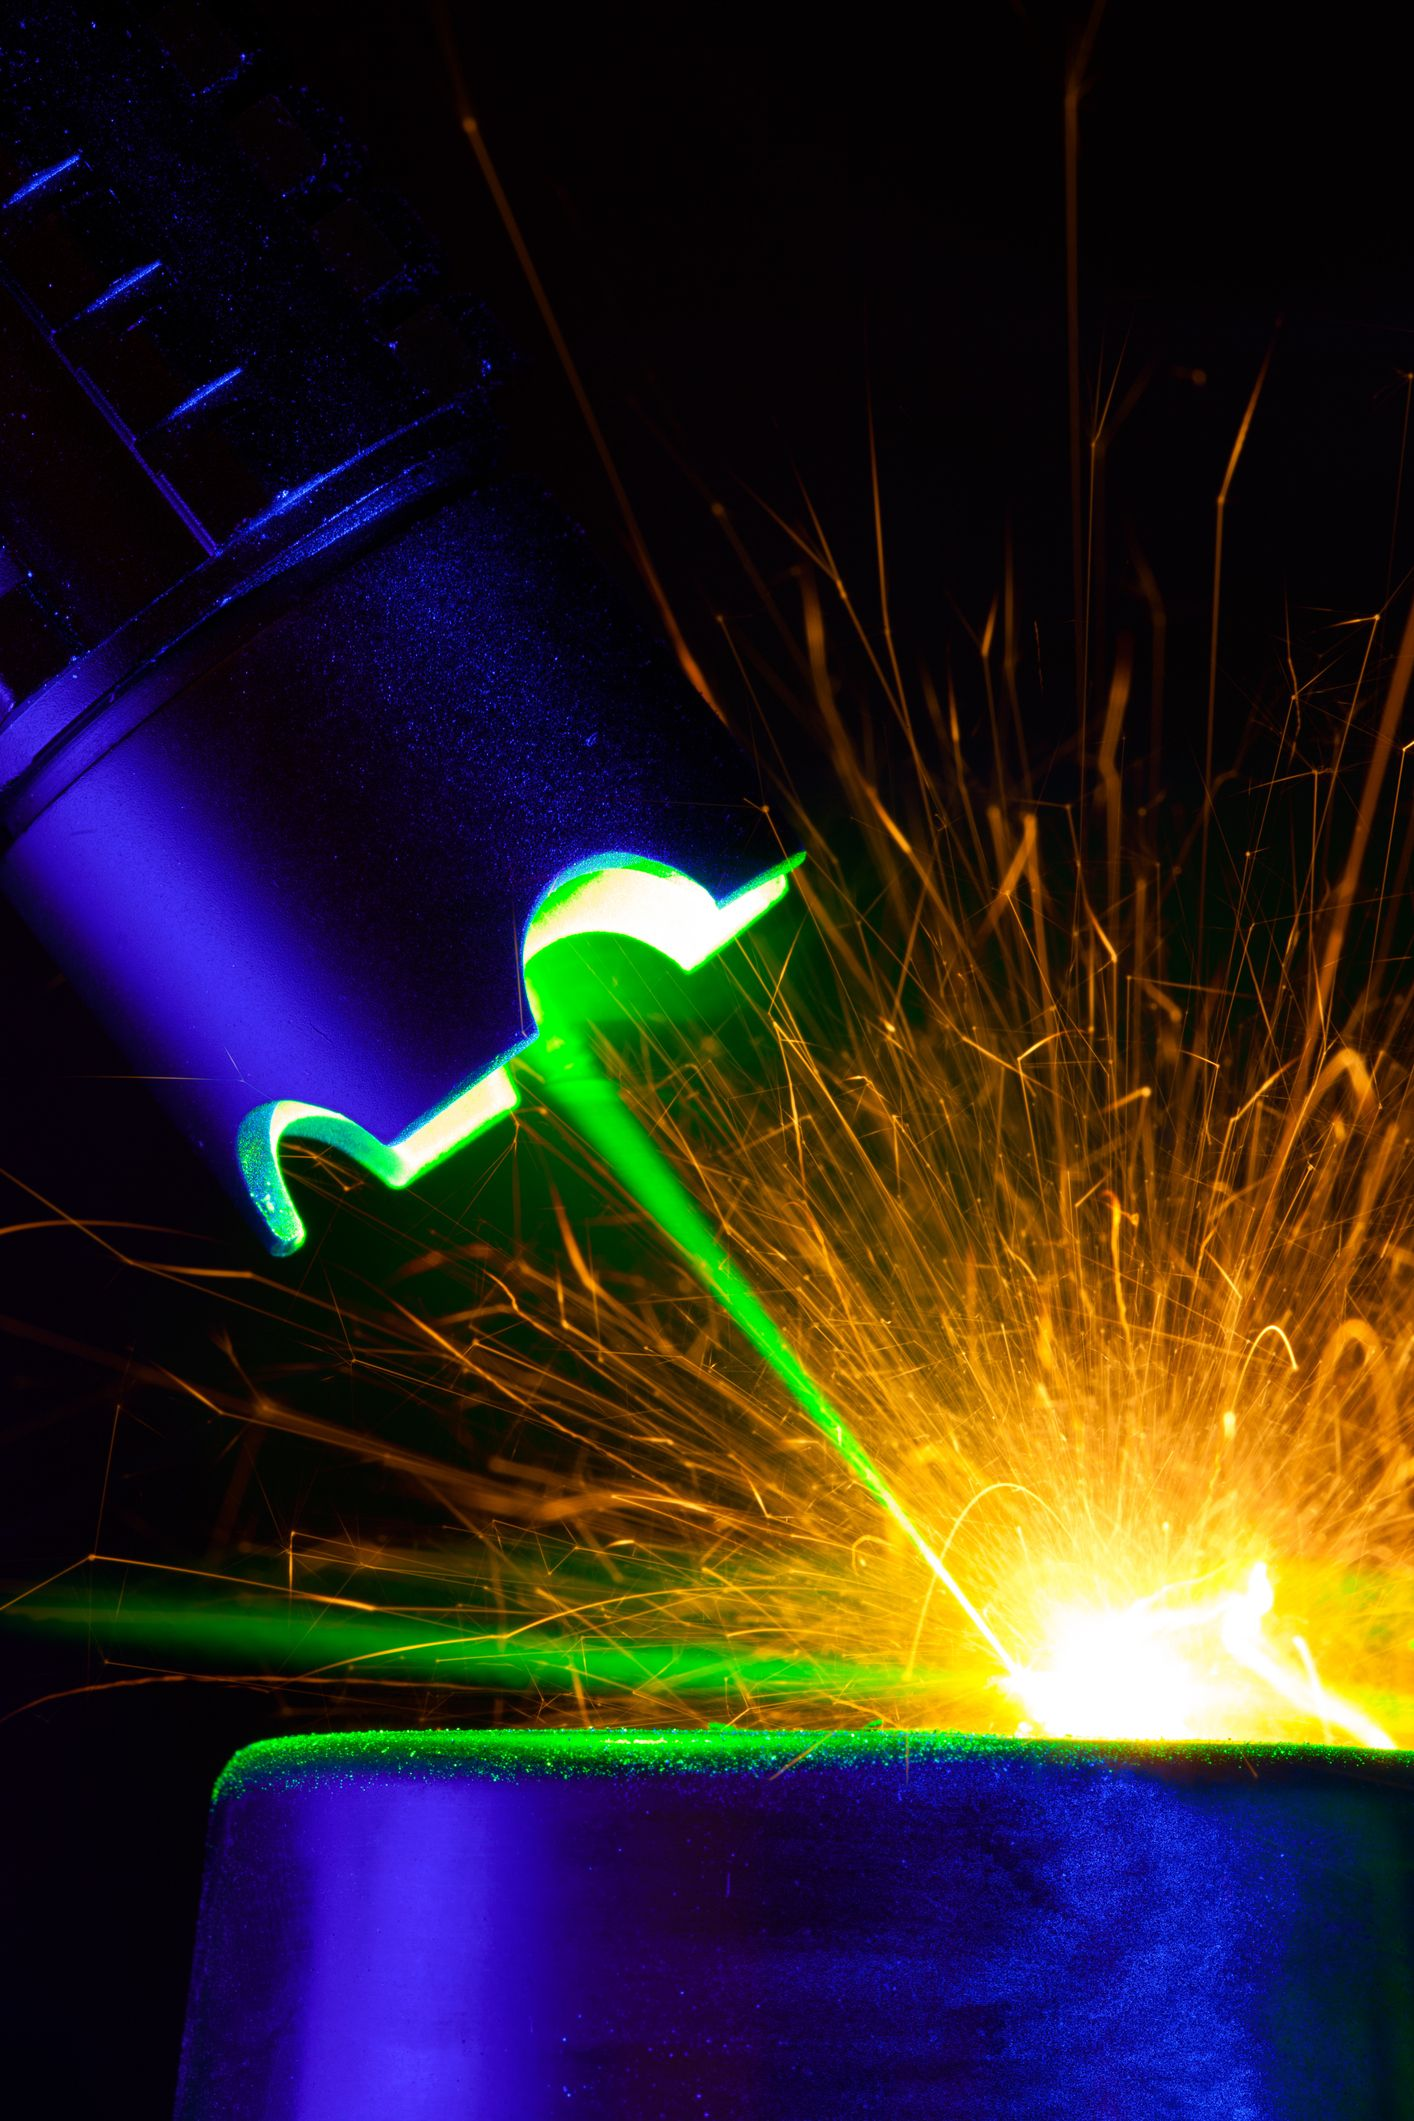 Scientists Build World's Most Powerful Pulse Laser